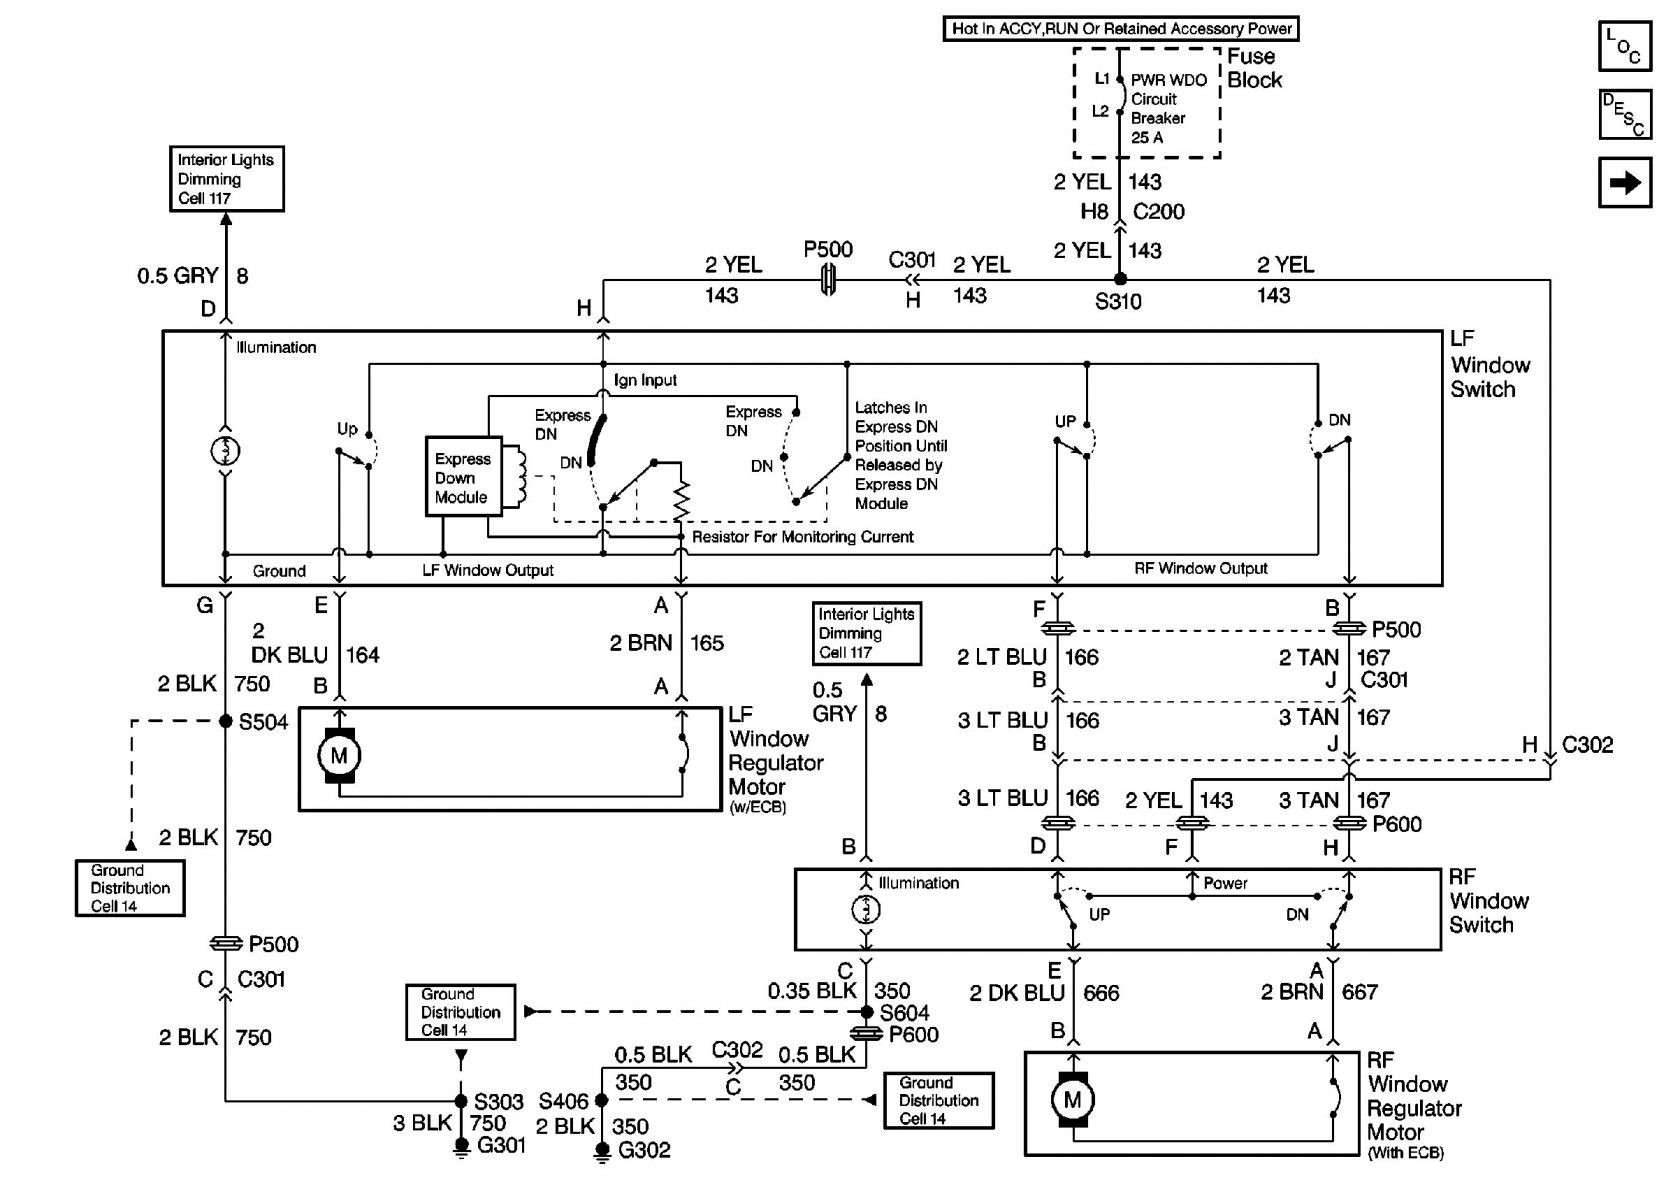 Subaru forester Engine Diagram Subaru 2 5 Engine Diagram Addition 2000 Subaru Impreza 2 5 Rs Subaru Of Subaru forester Engine Diagram